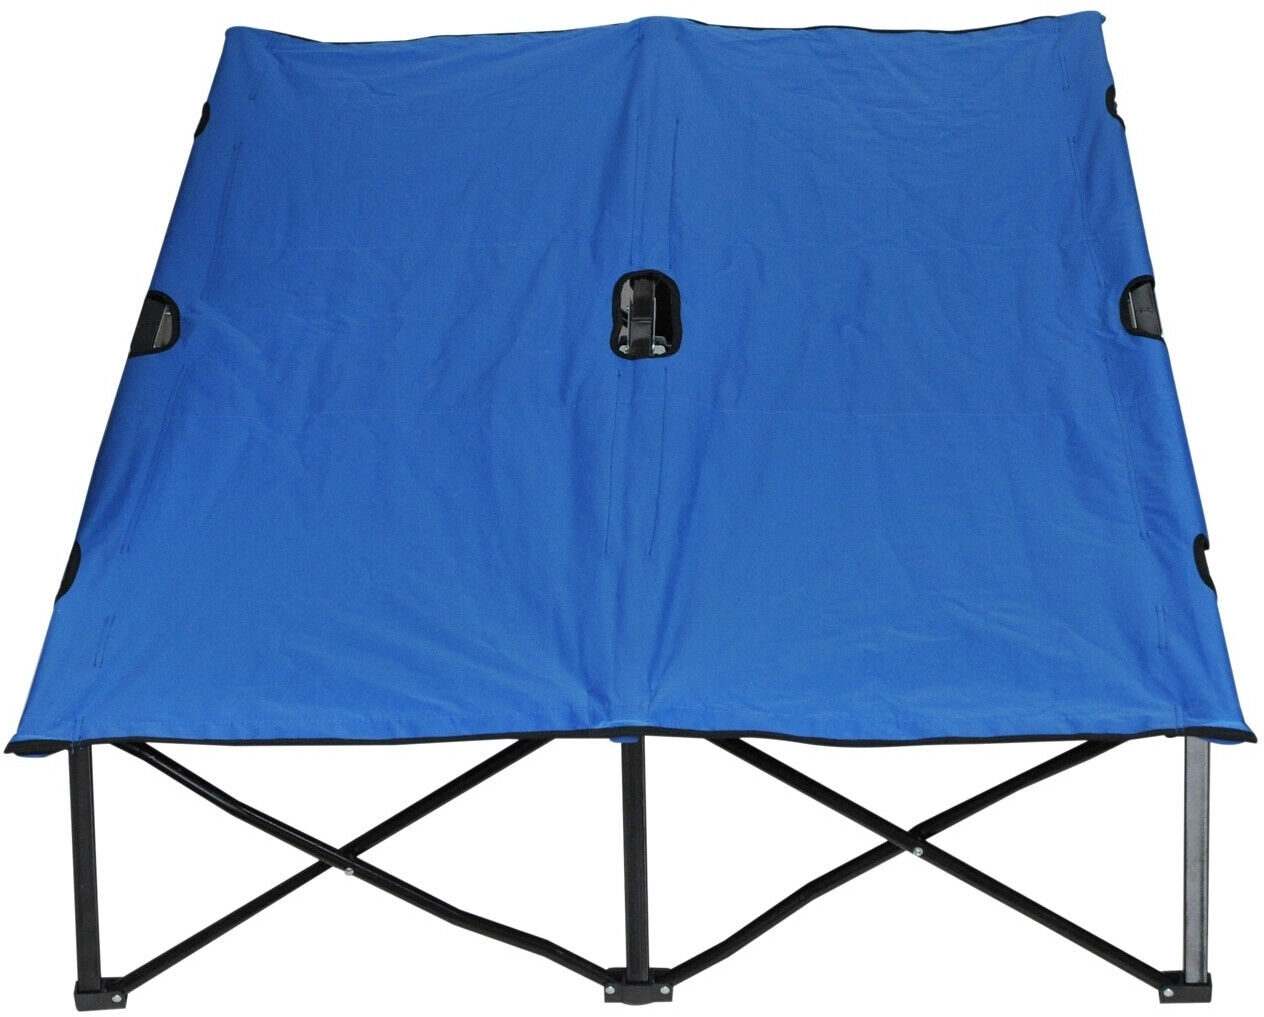 Two Person Camping Cot Double Wide Folding Bed Elevated azul 440 Lb Capacity